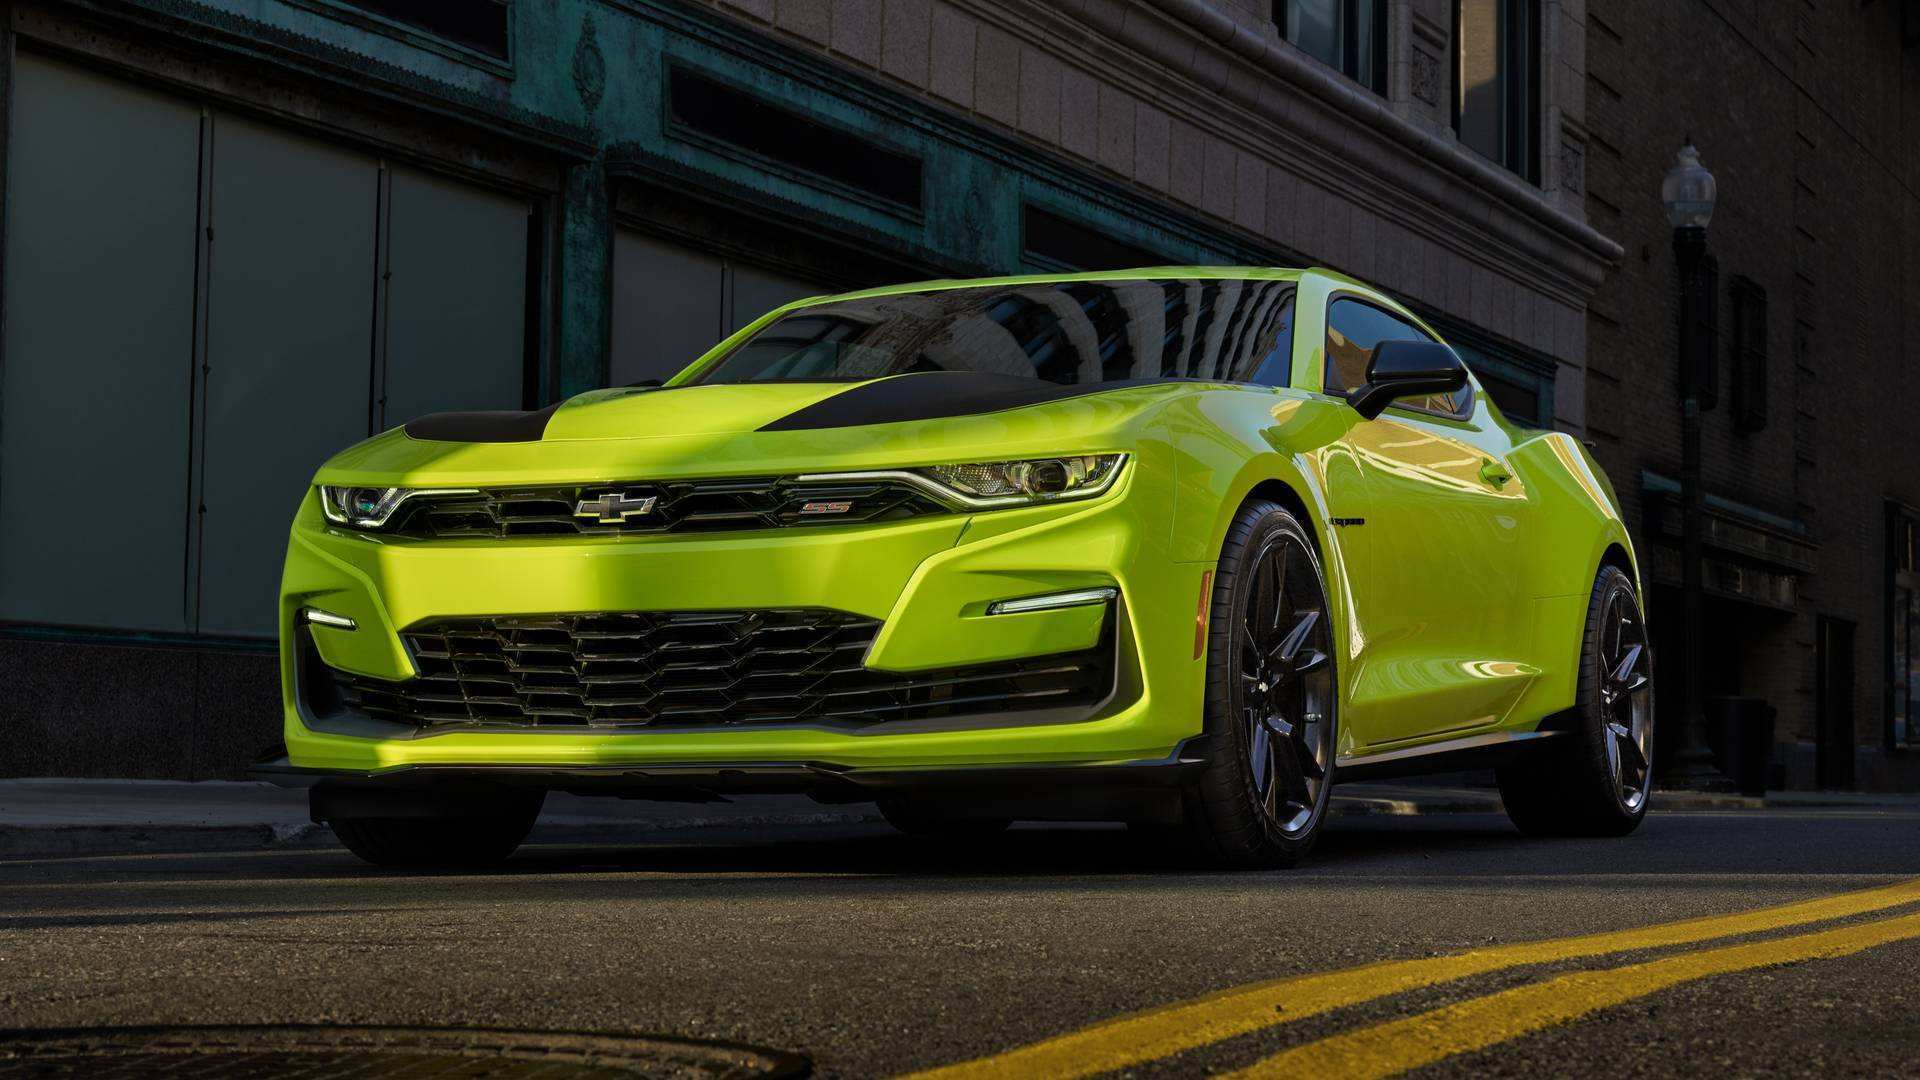 56 All New 2020 Camaro Z28 Horsepower Concept And Review